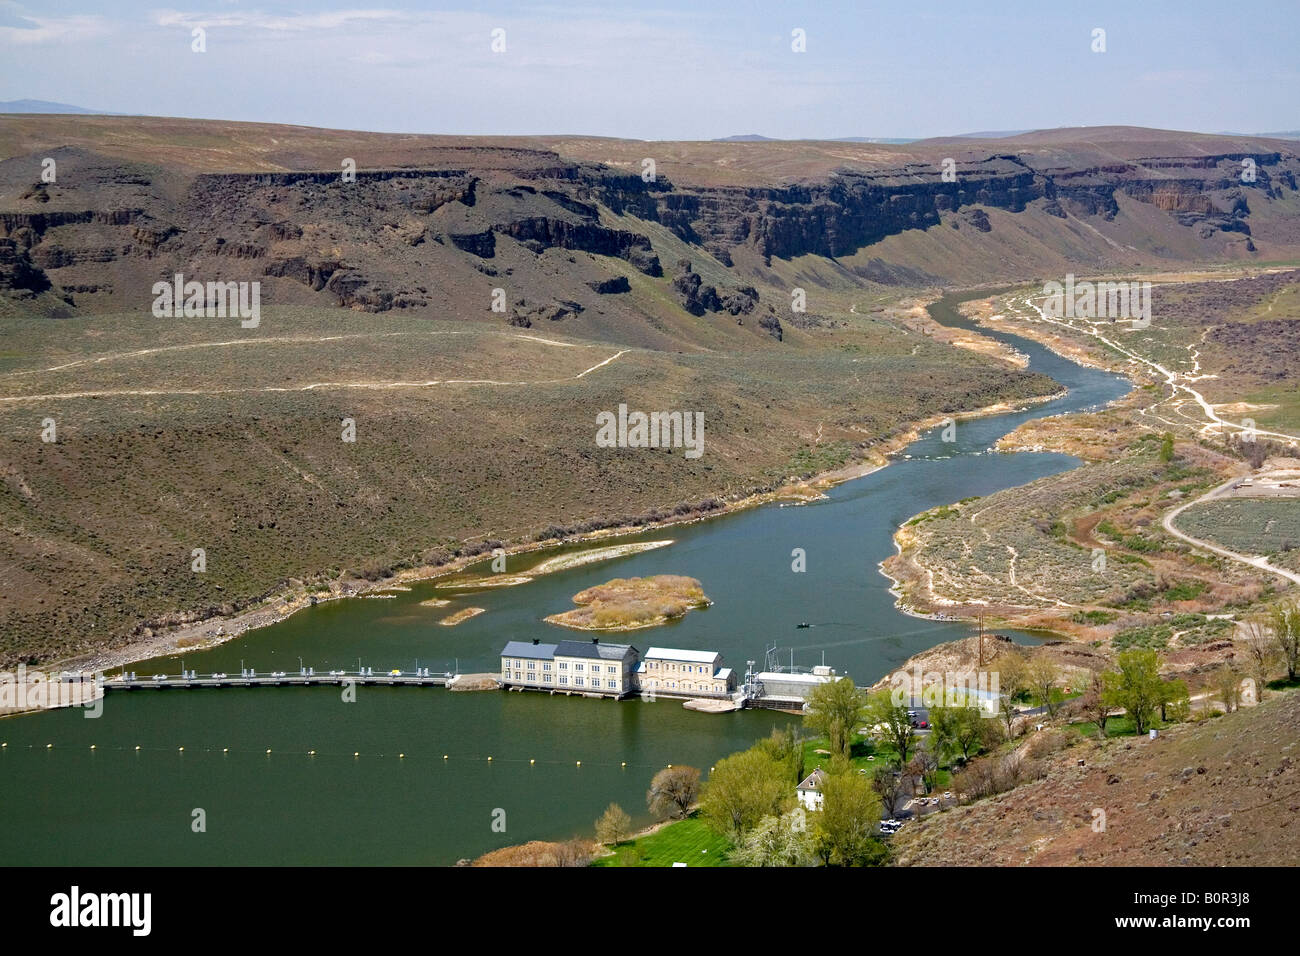 Swan Falls hydroelectric dam on the Snake River in Idaho - Stock Image